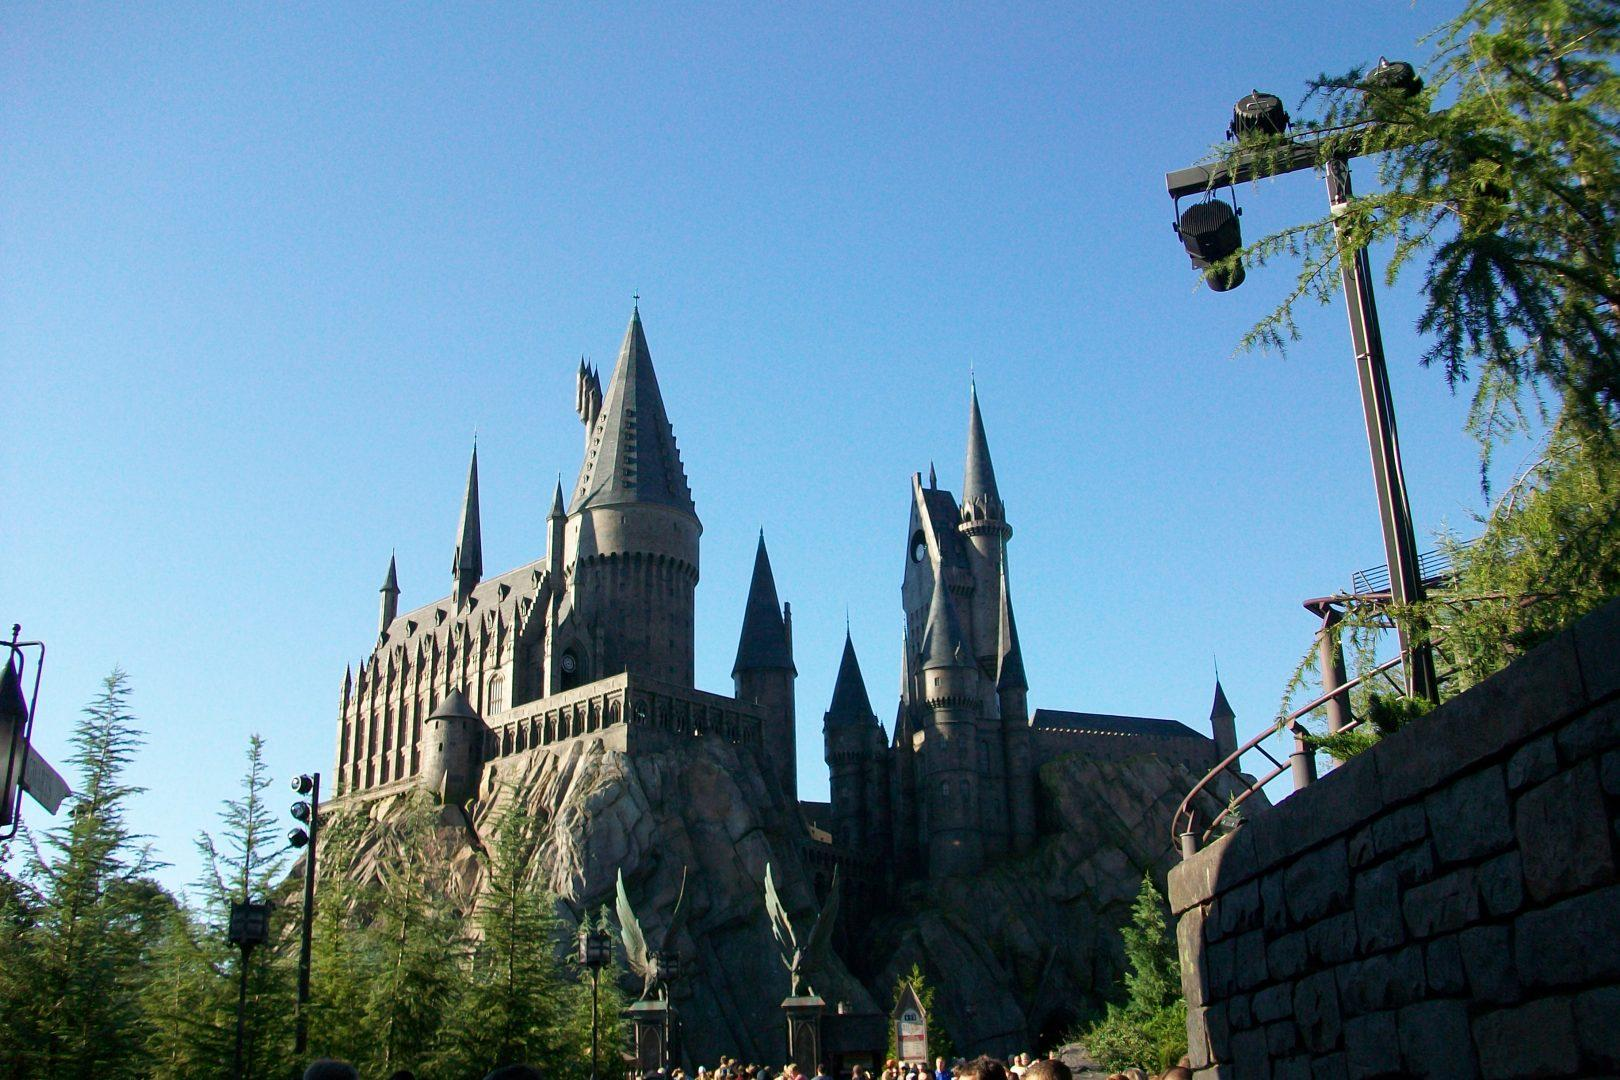 The Wizarding World of Harry Potter in Orlando, FL was a source of comfort for many Harry Potter fans after the conclusion of the film series. Fortunately, JK Rowling is rolling out a new Harry Potter-based film franchise.